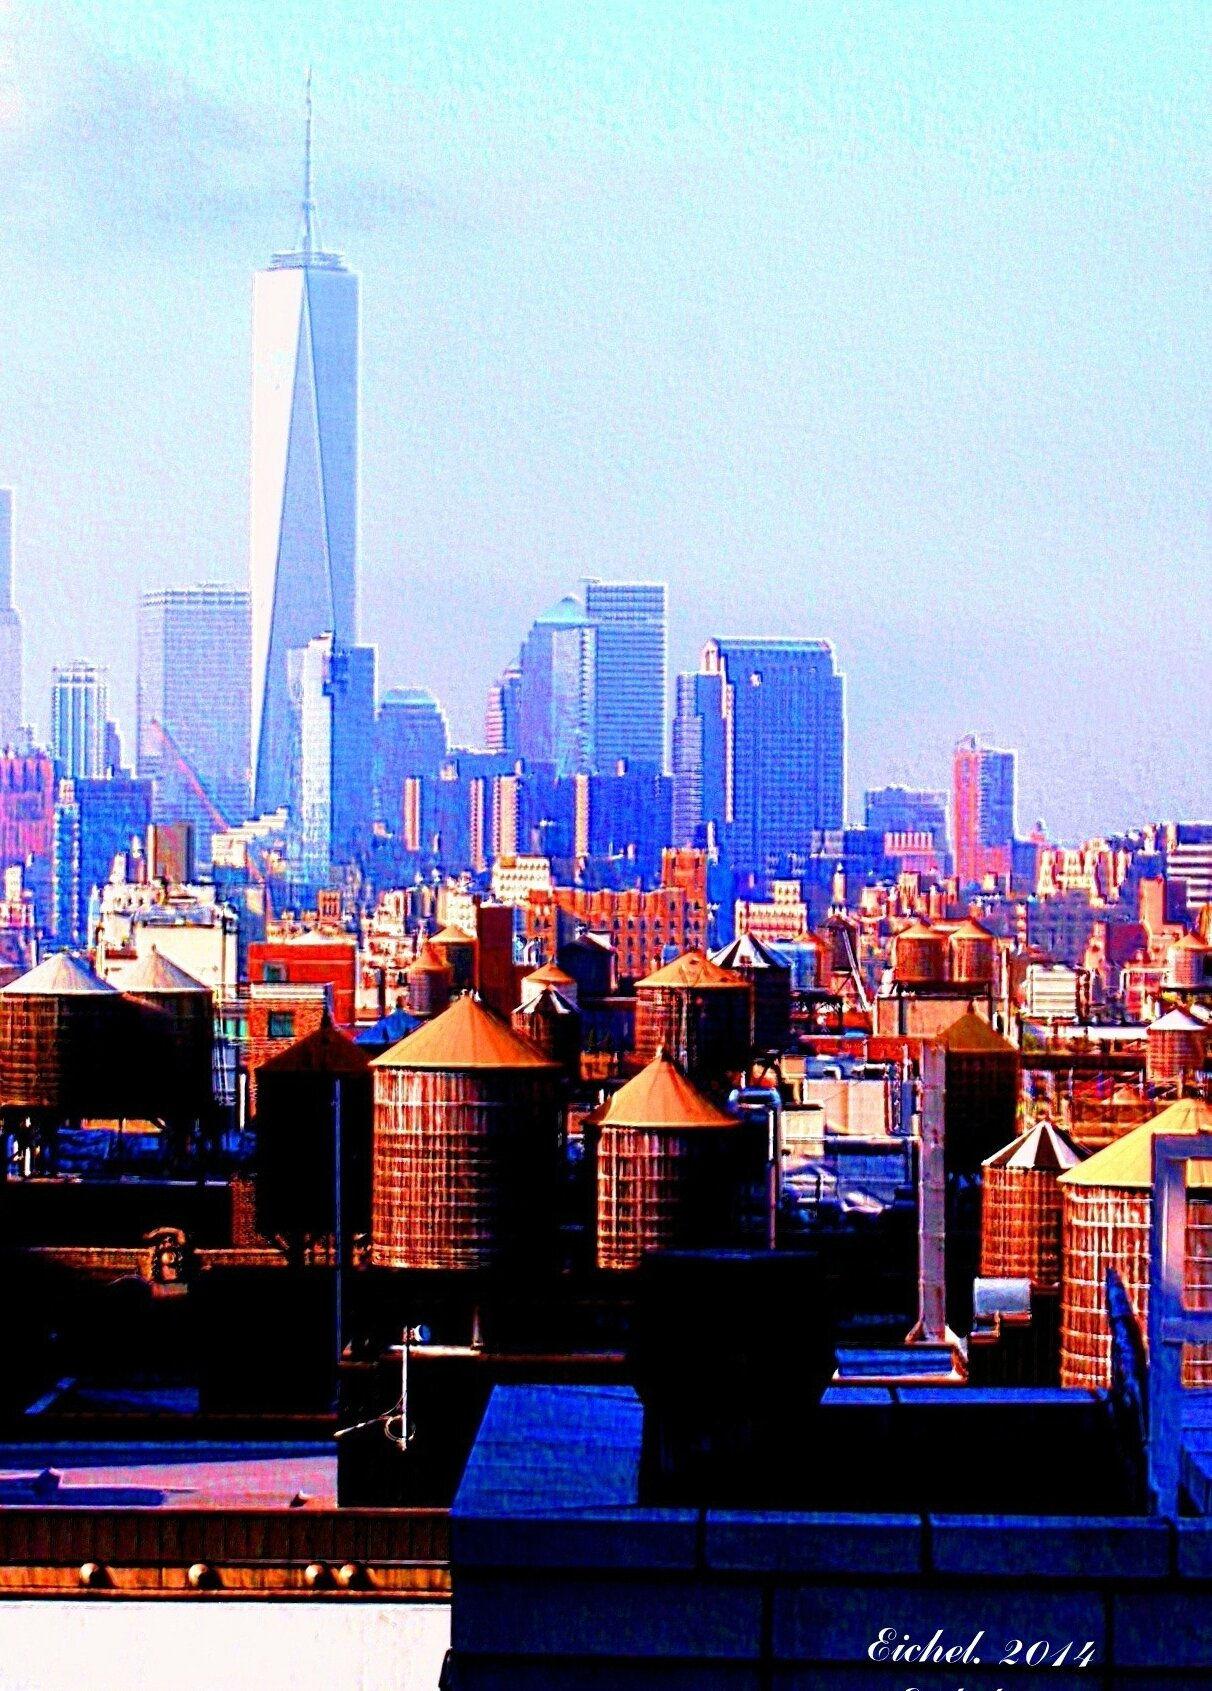 NEW-YORK 2014 FREEDOM TOWER VUE DES TOITS DE CHELSEA